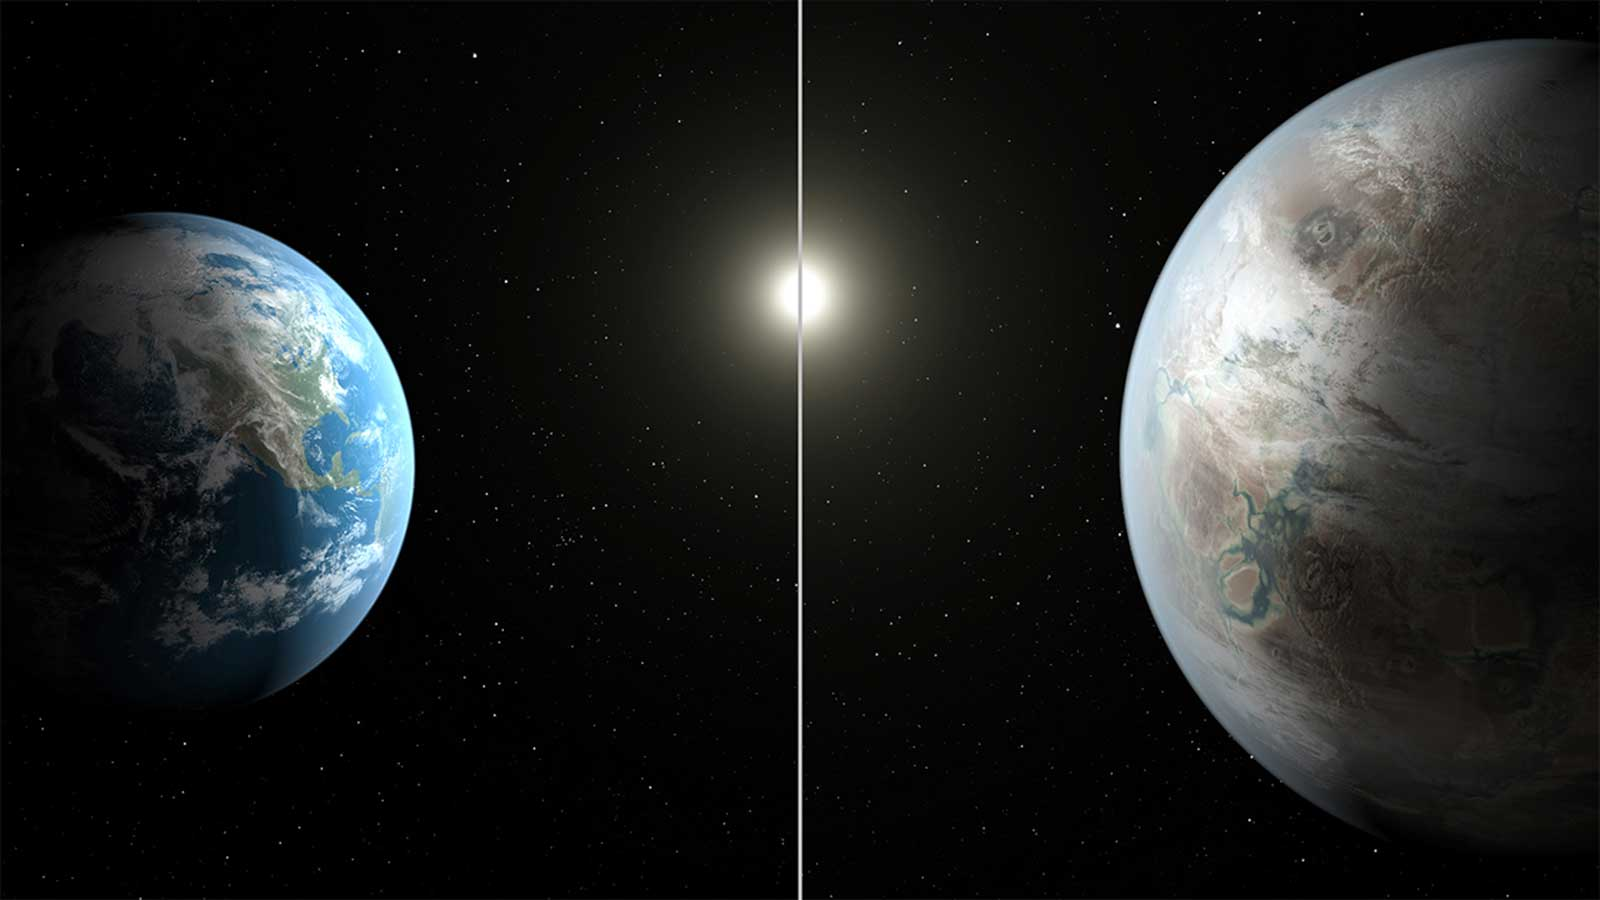 Earth and Kepler-452b